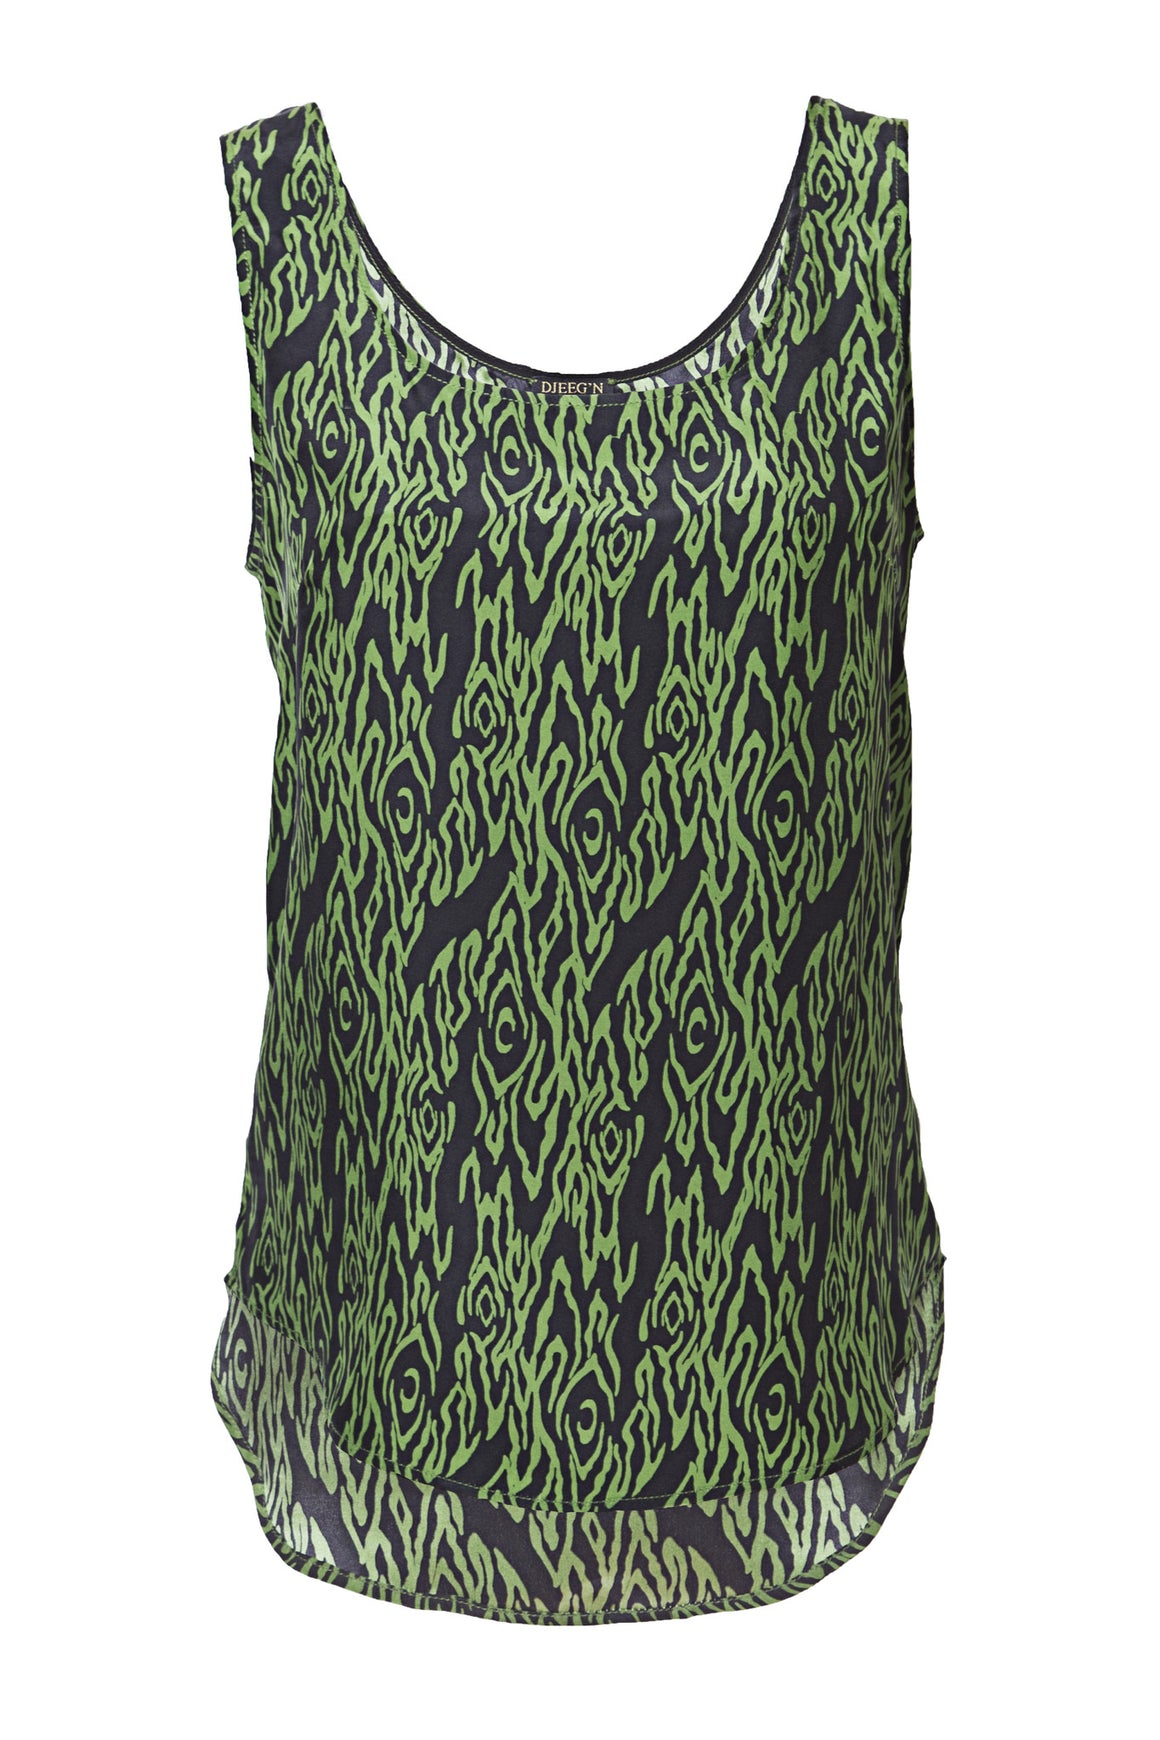 green black luxury silk tank top